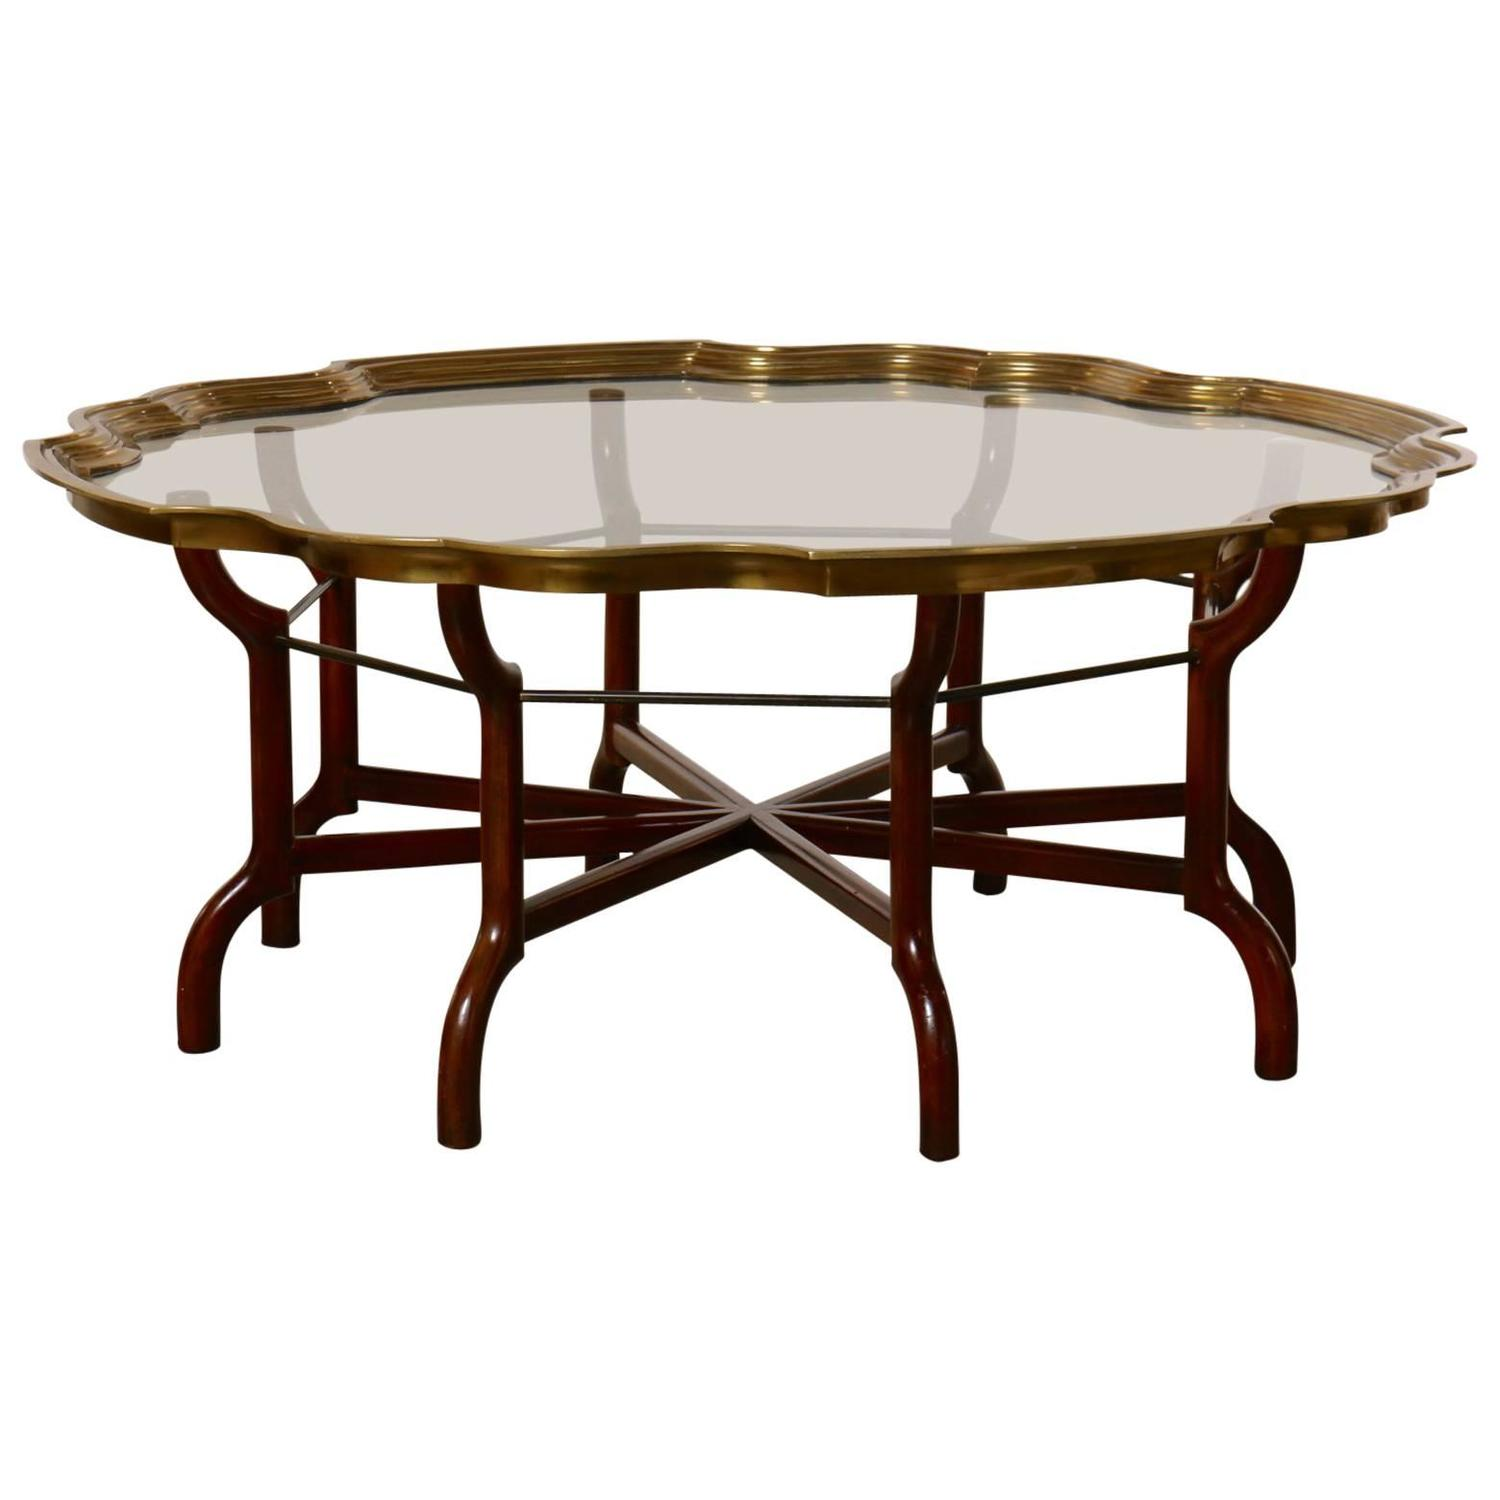 baker brass and glass round tray top coffee table at 1stdibs. Black Bedroom Furniture Sets. Home Design Ideas